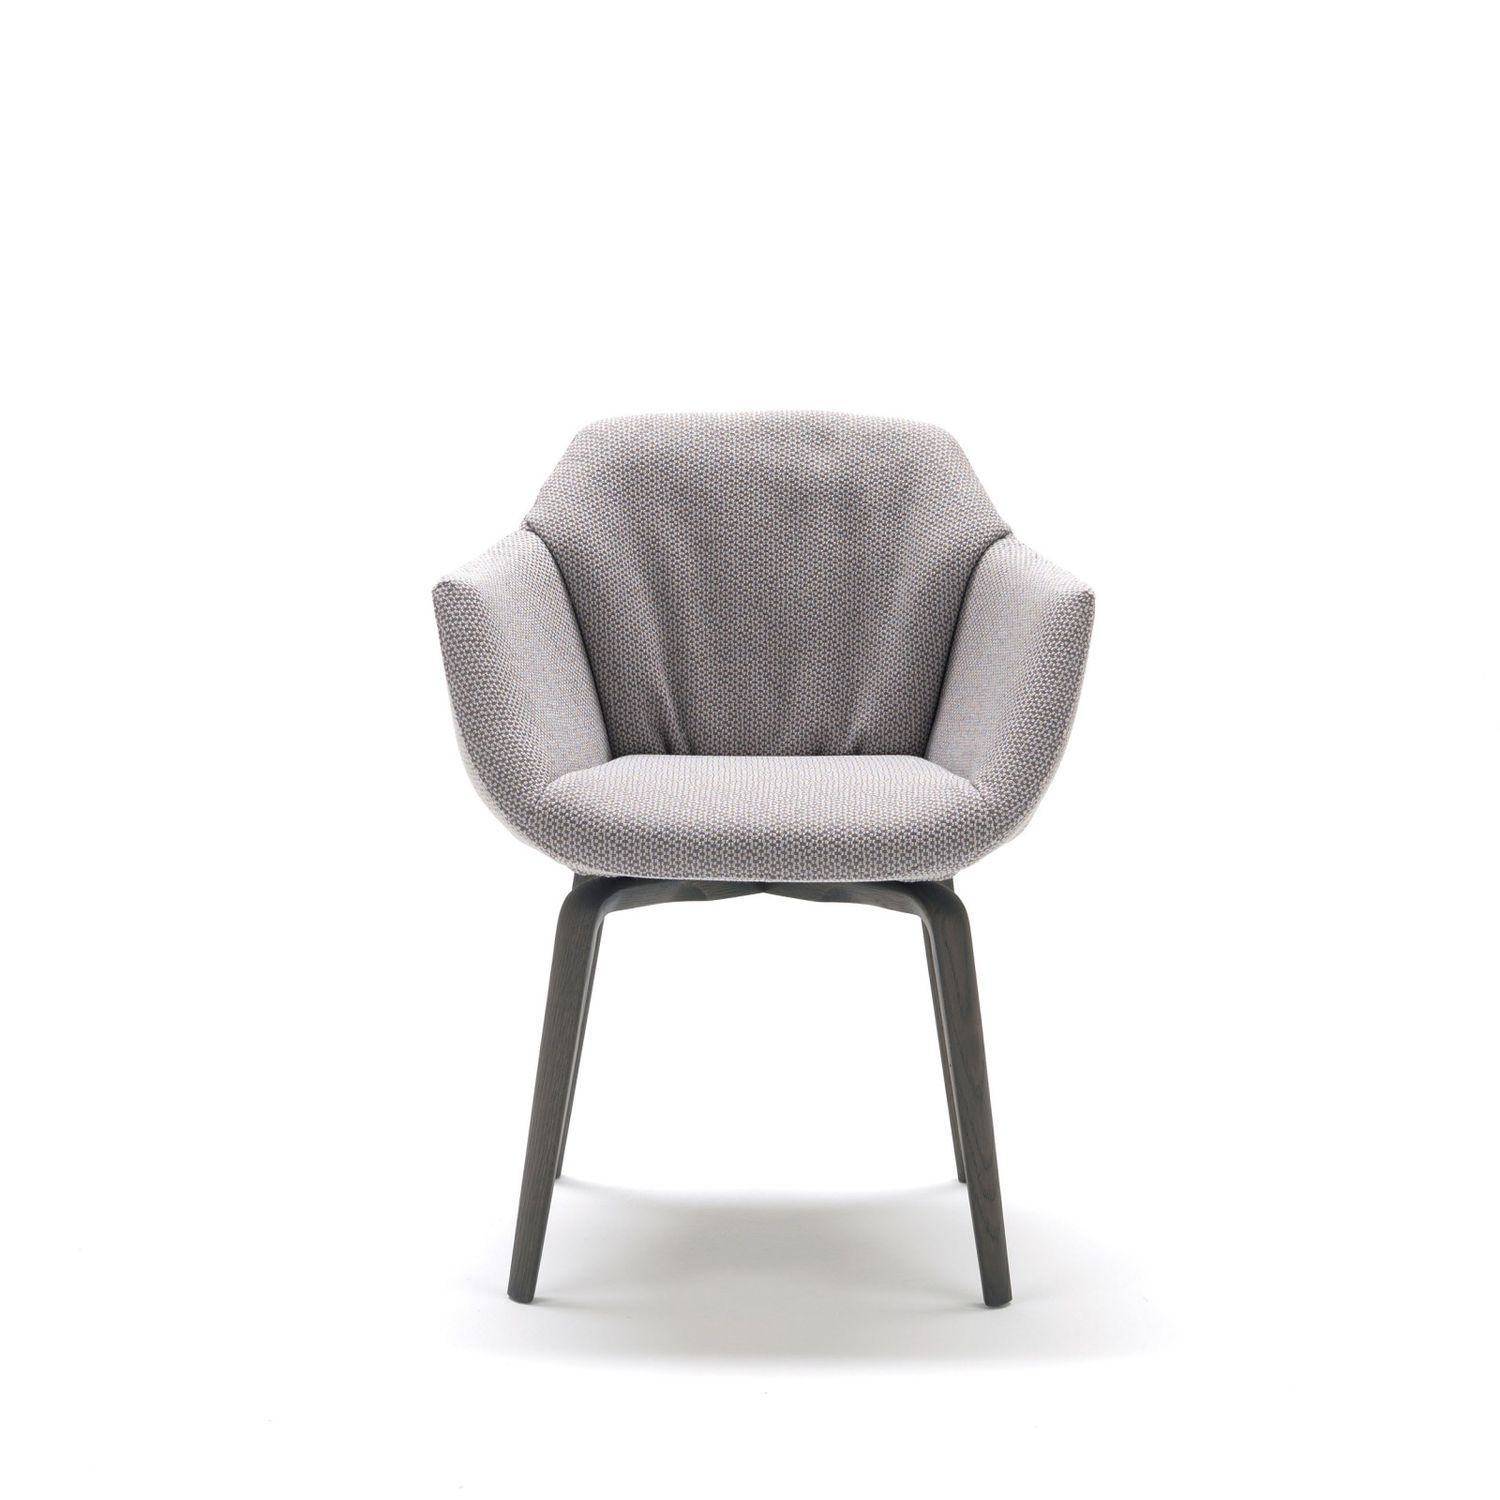 Captivating Contemporary Chair / With Armrests / Upholstered / Fabric   NAOS